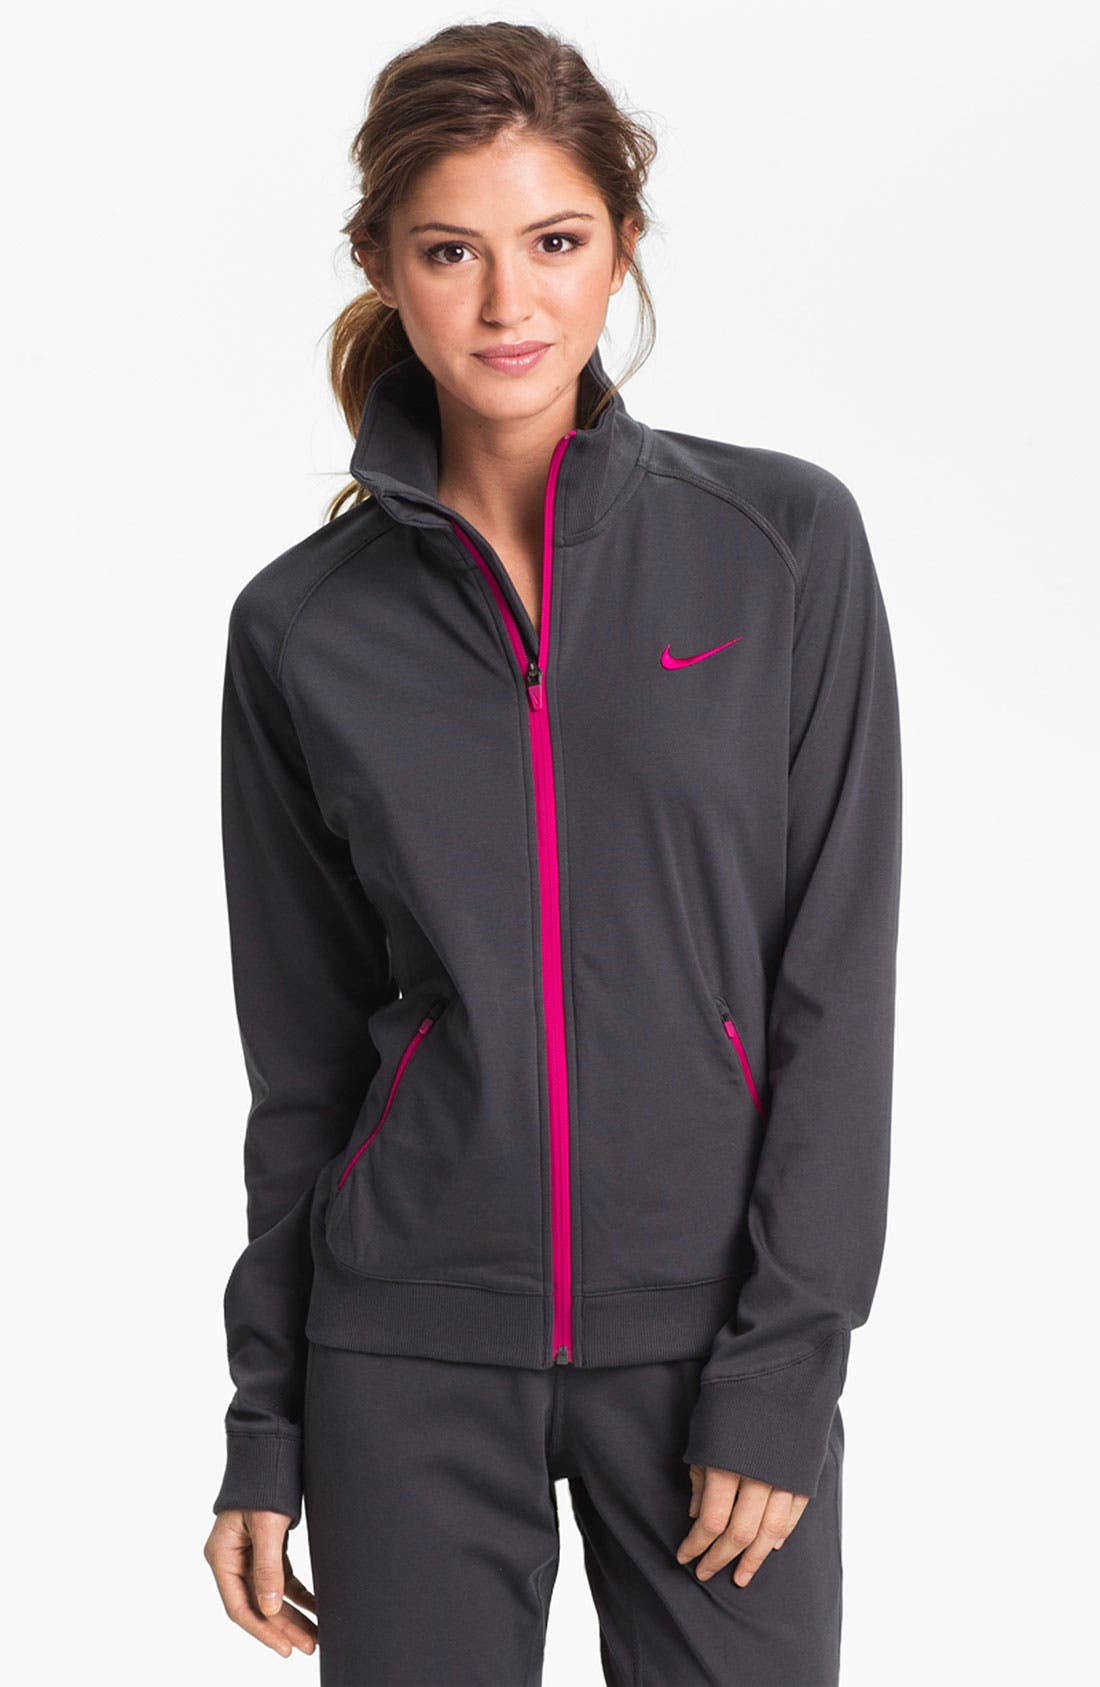 Alternate Image 1 Selected - Nike 'All Time' Dri-FIT Jacket